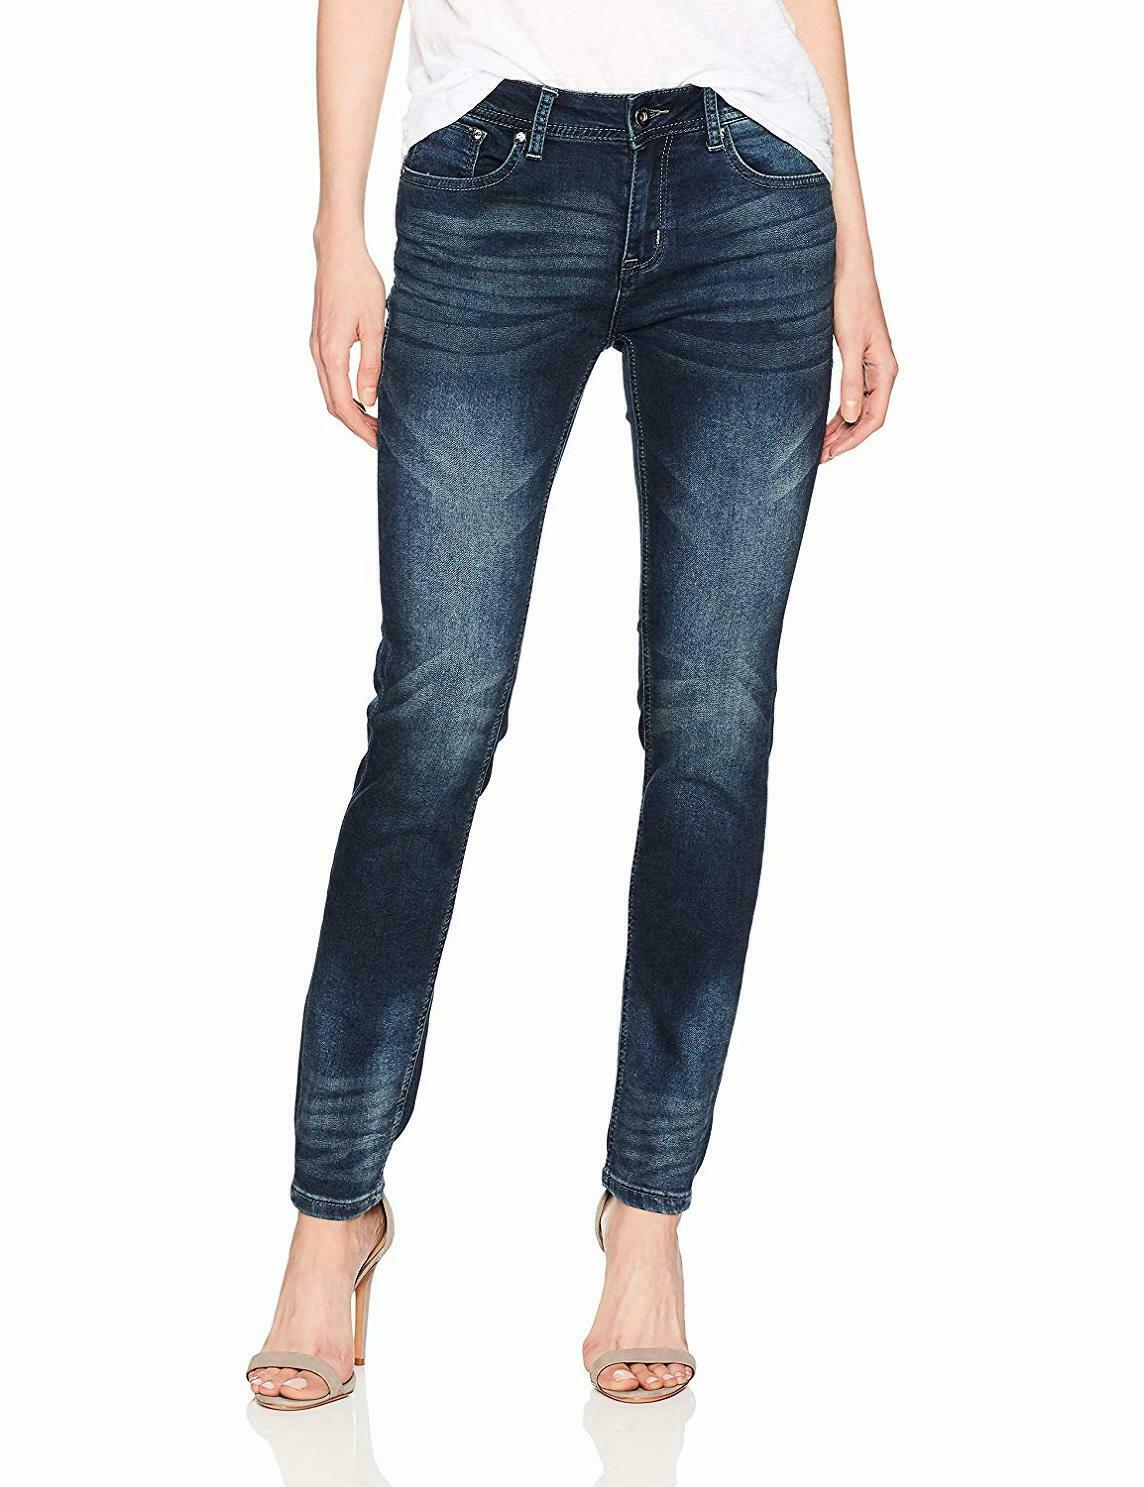 Grace in LA Women's Easy Fit Skinny Jeans - Choose SZ color